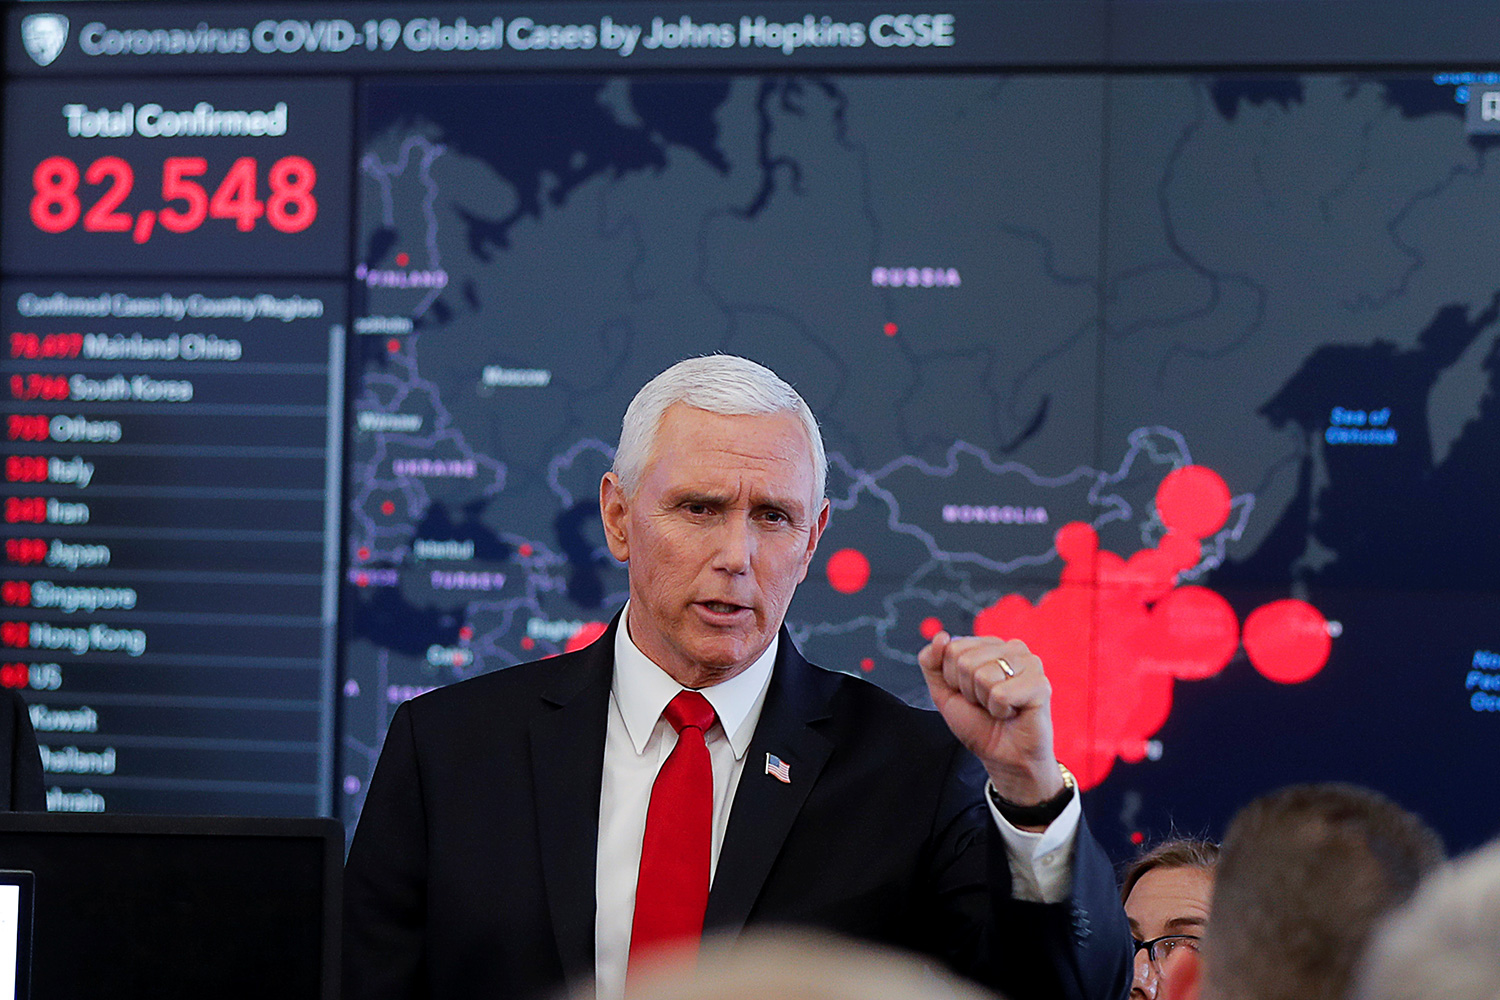 The picture shows Pence standing in front of a huge screen with situation data on it.